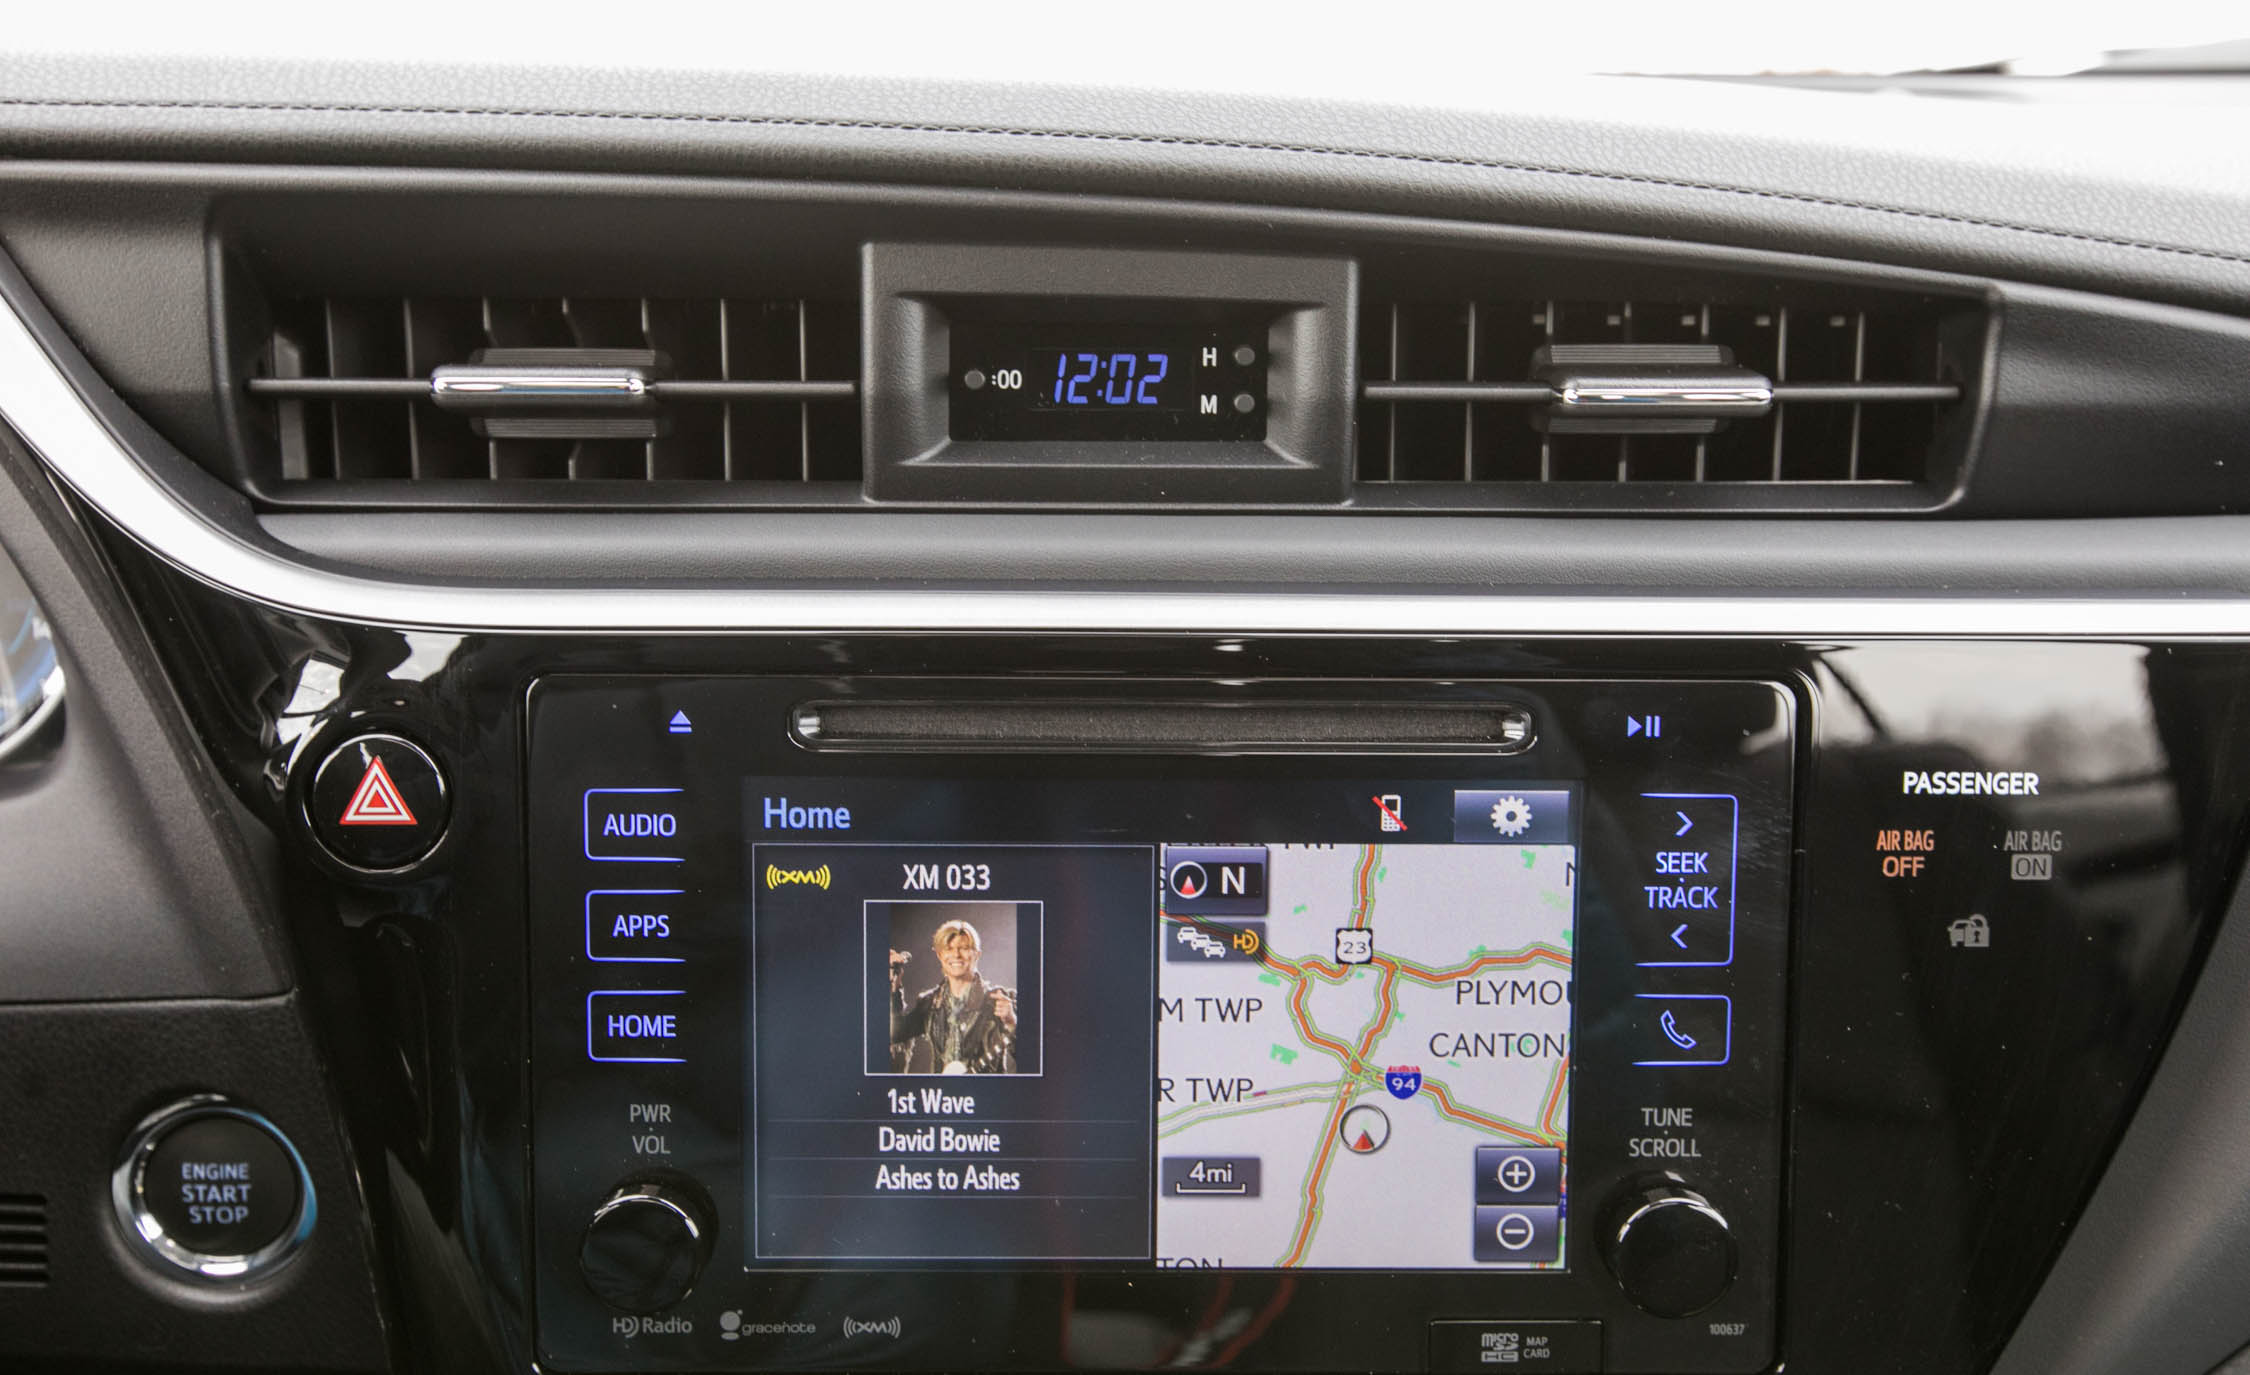 2017 Toyota Corolla XSE Interior View Headunit And Clock (View 47 of 75)